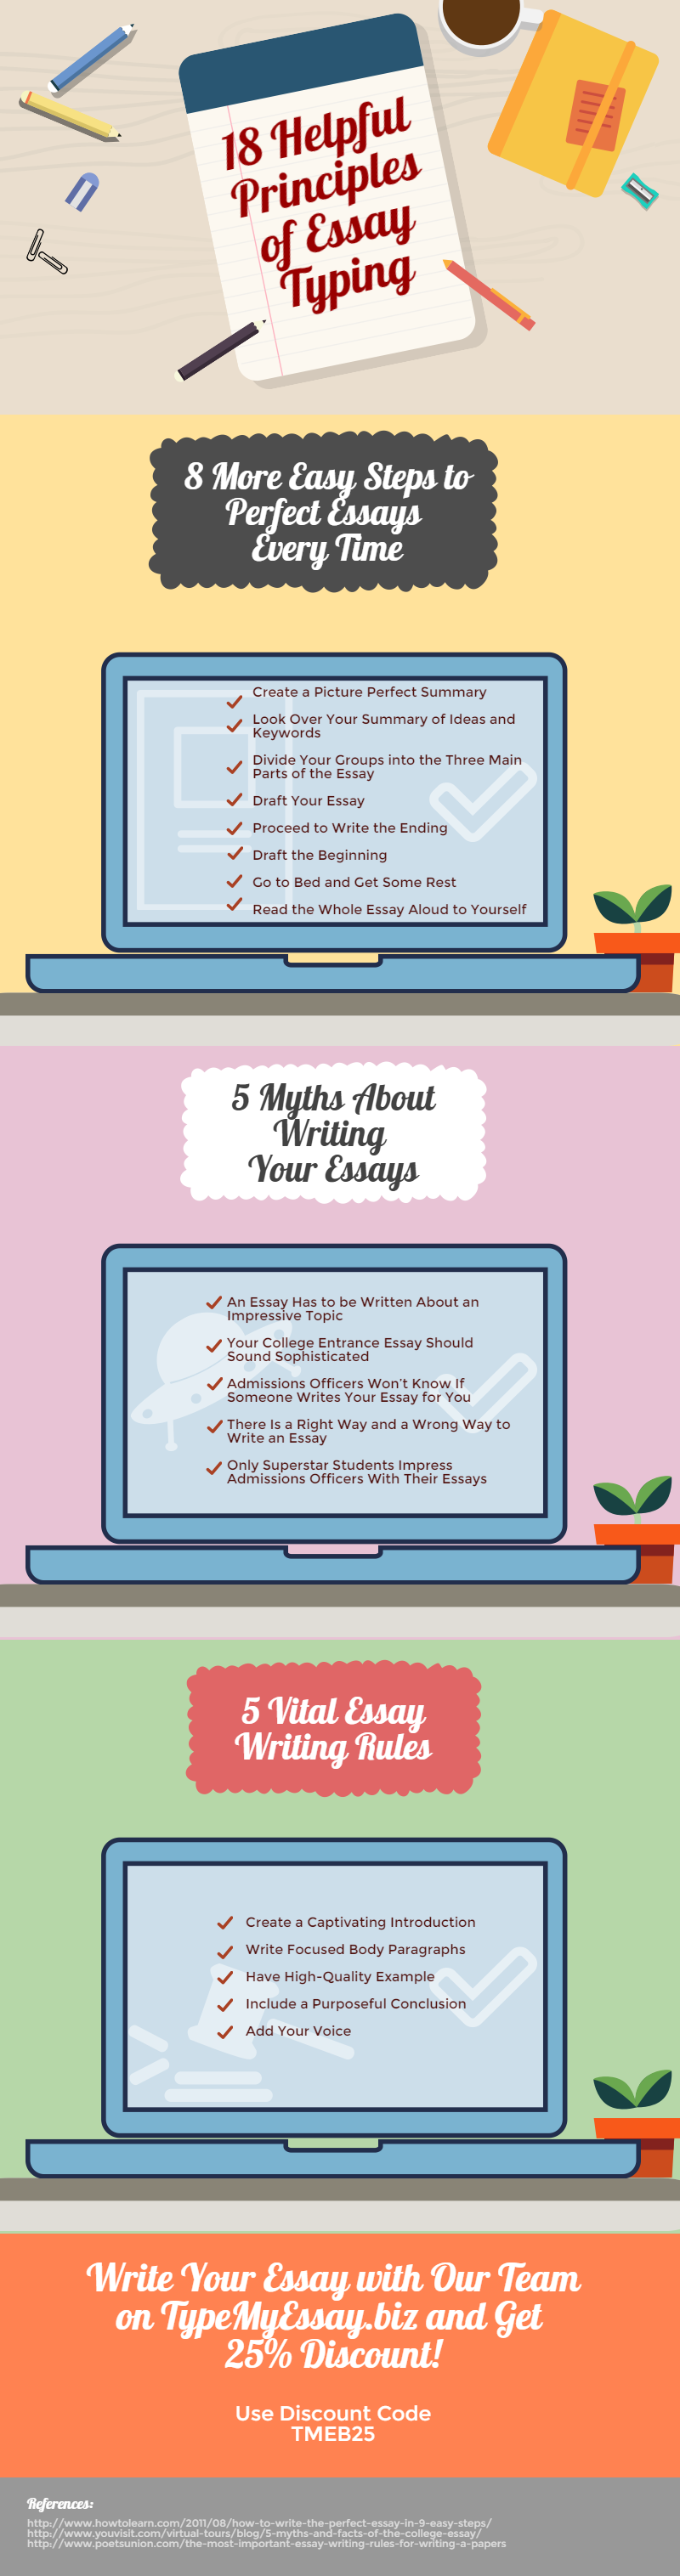 Helpful Principles Of Essay Writing Infographic  Education   Helpful Principles Of Essay Writing Infographic   Httpelearninginfographicscom Good High School Essay Topics also My English Class Essay  Synthesis Essay Tips